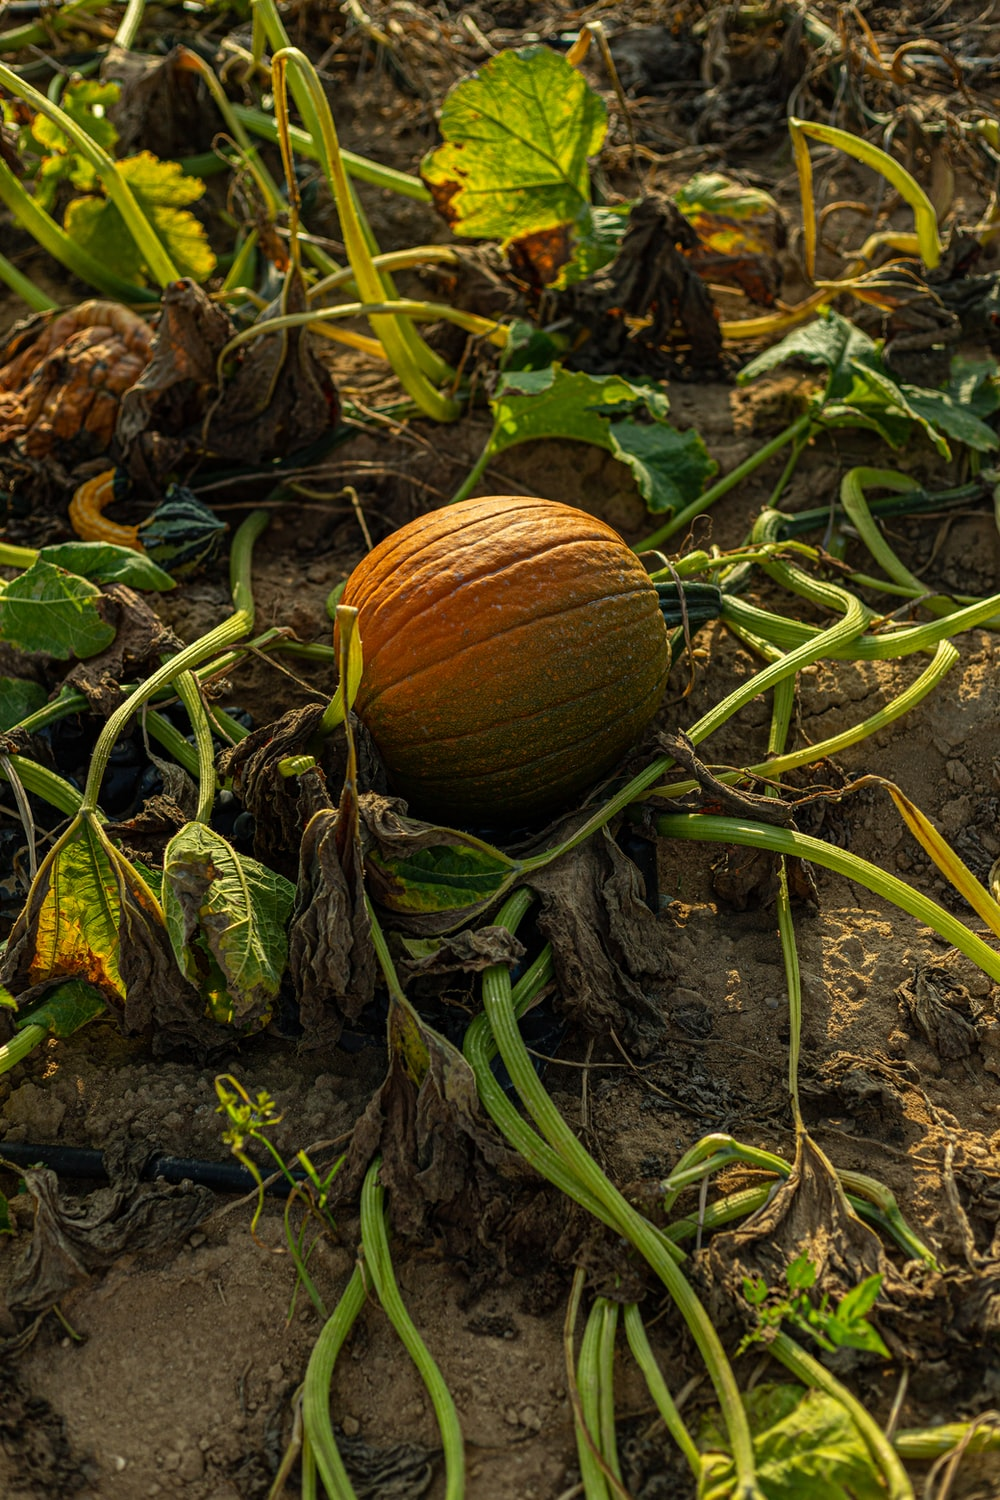 brown round fruit on ground